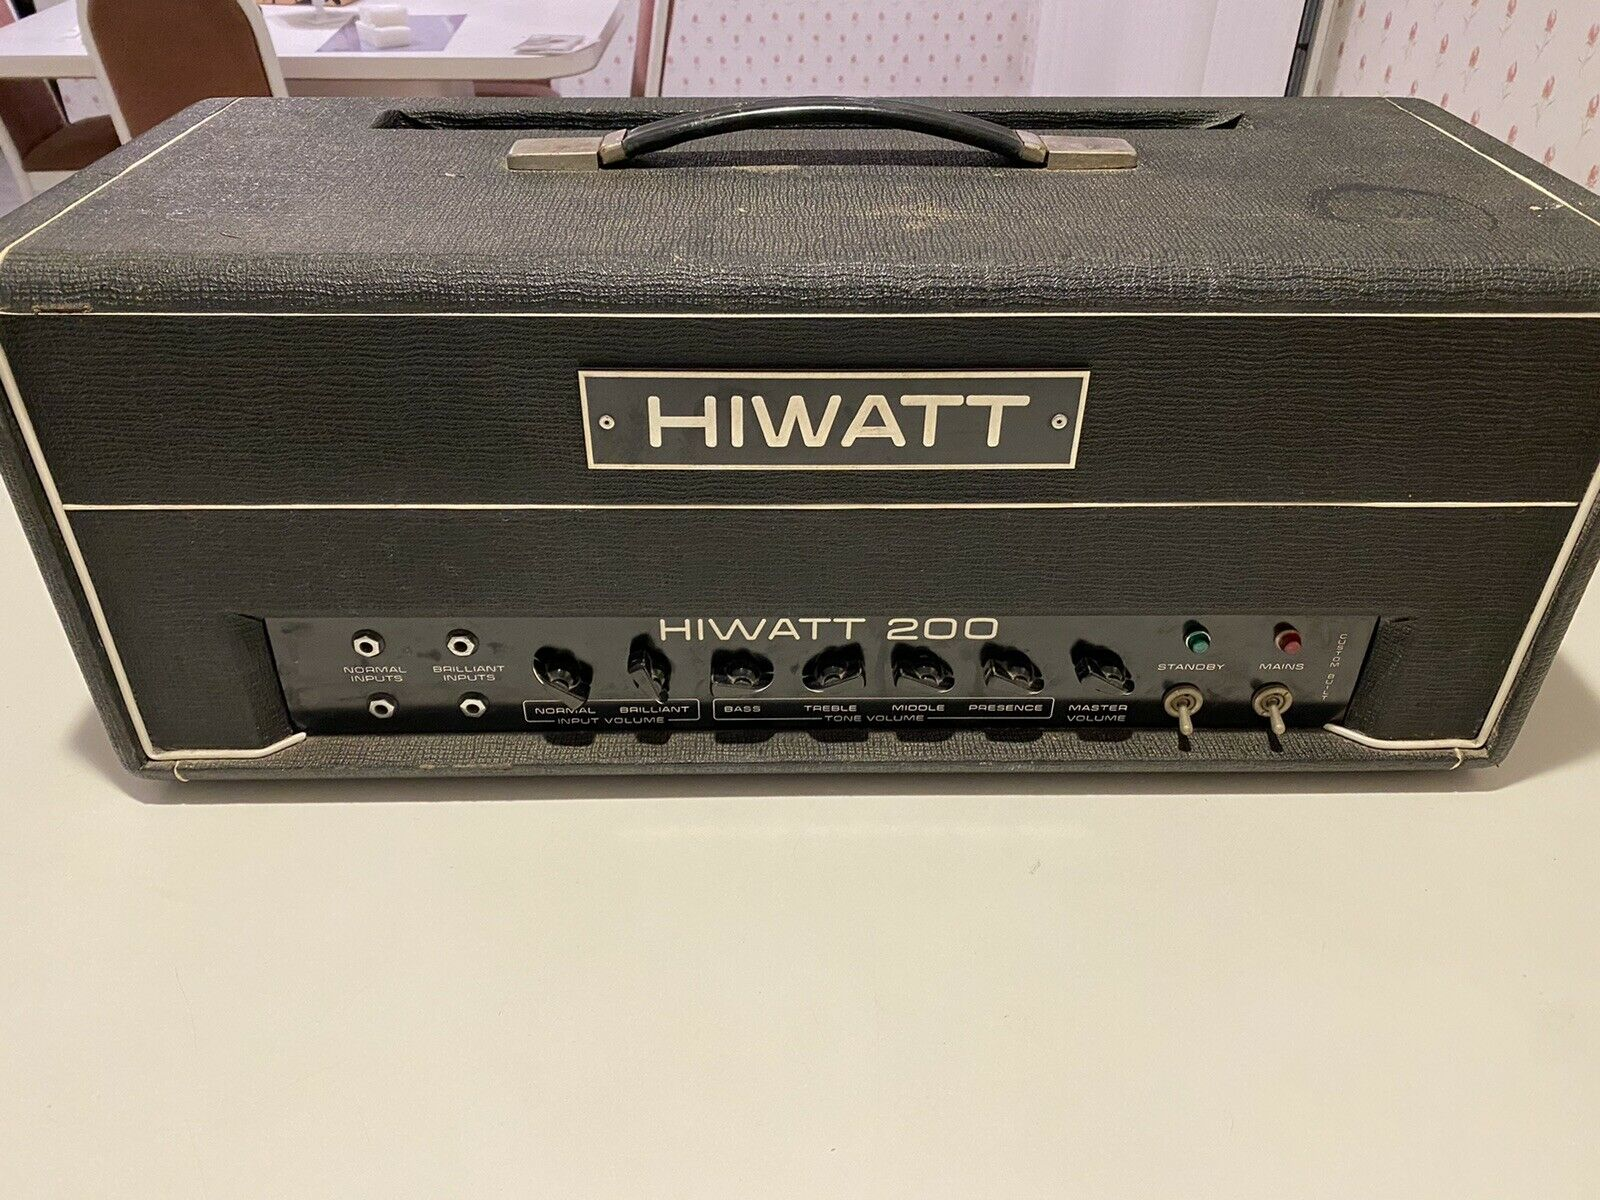 Hiwatt 1970's 200 Watt Amp With Vintage Tubes. All Original! Killer Amp!!. Buy it now for 2000.00